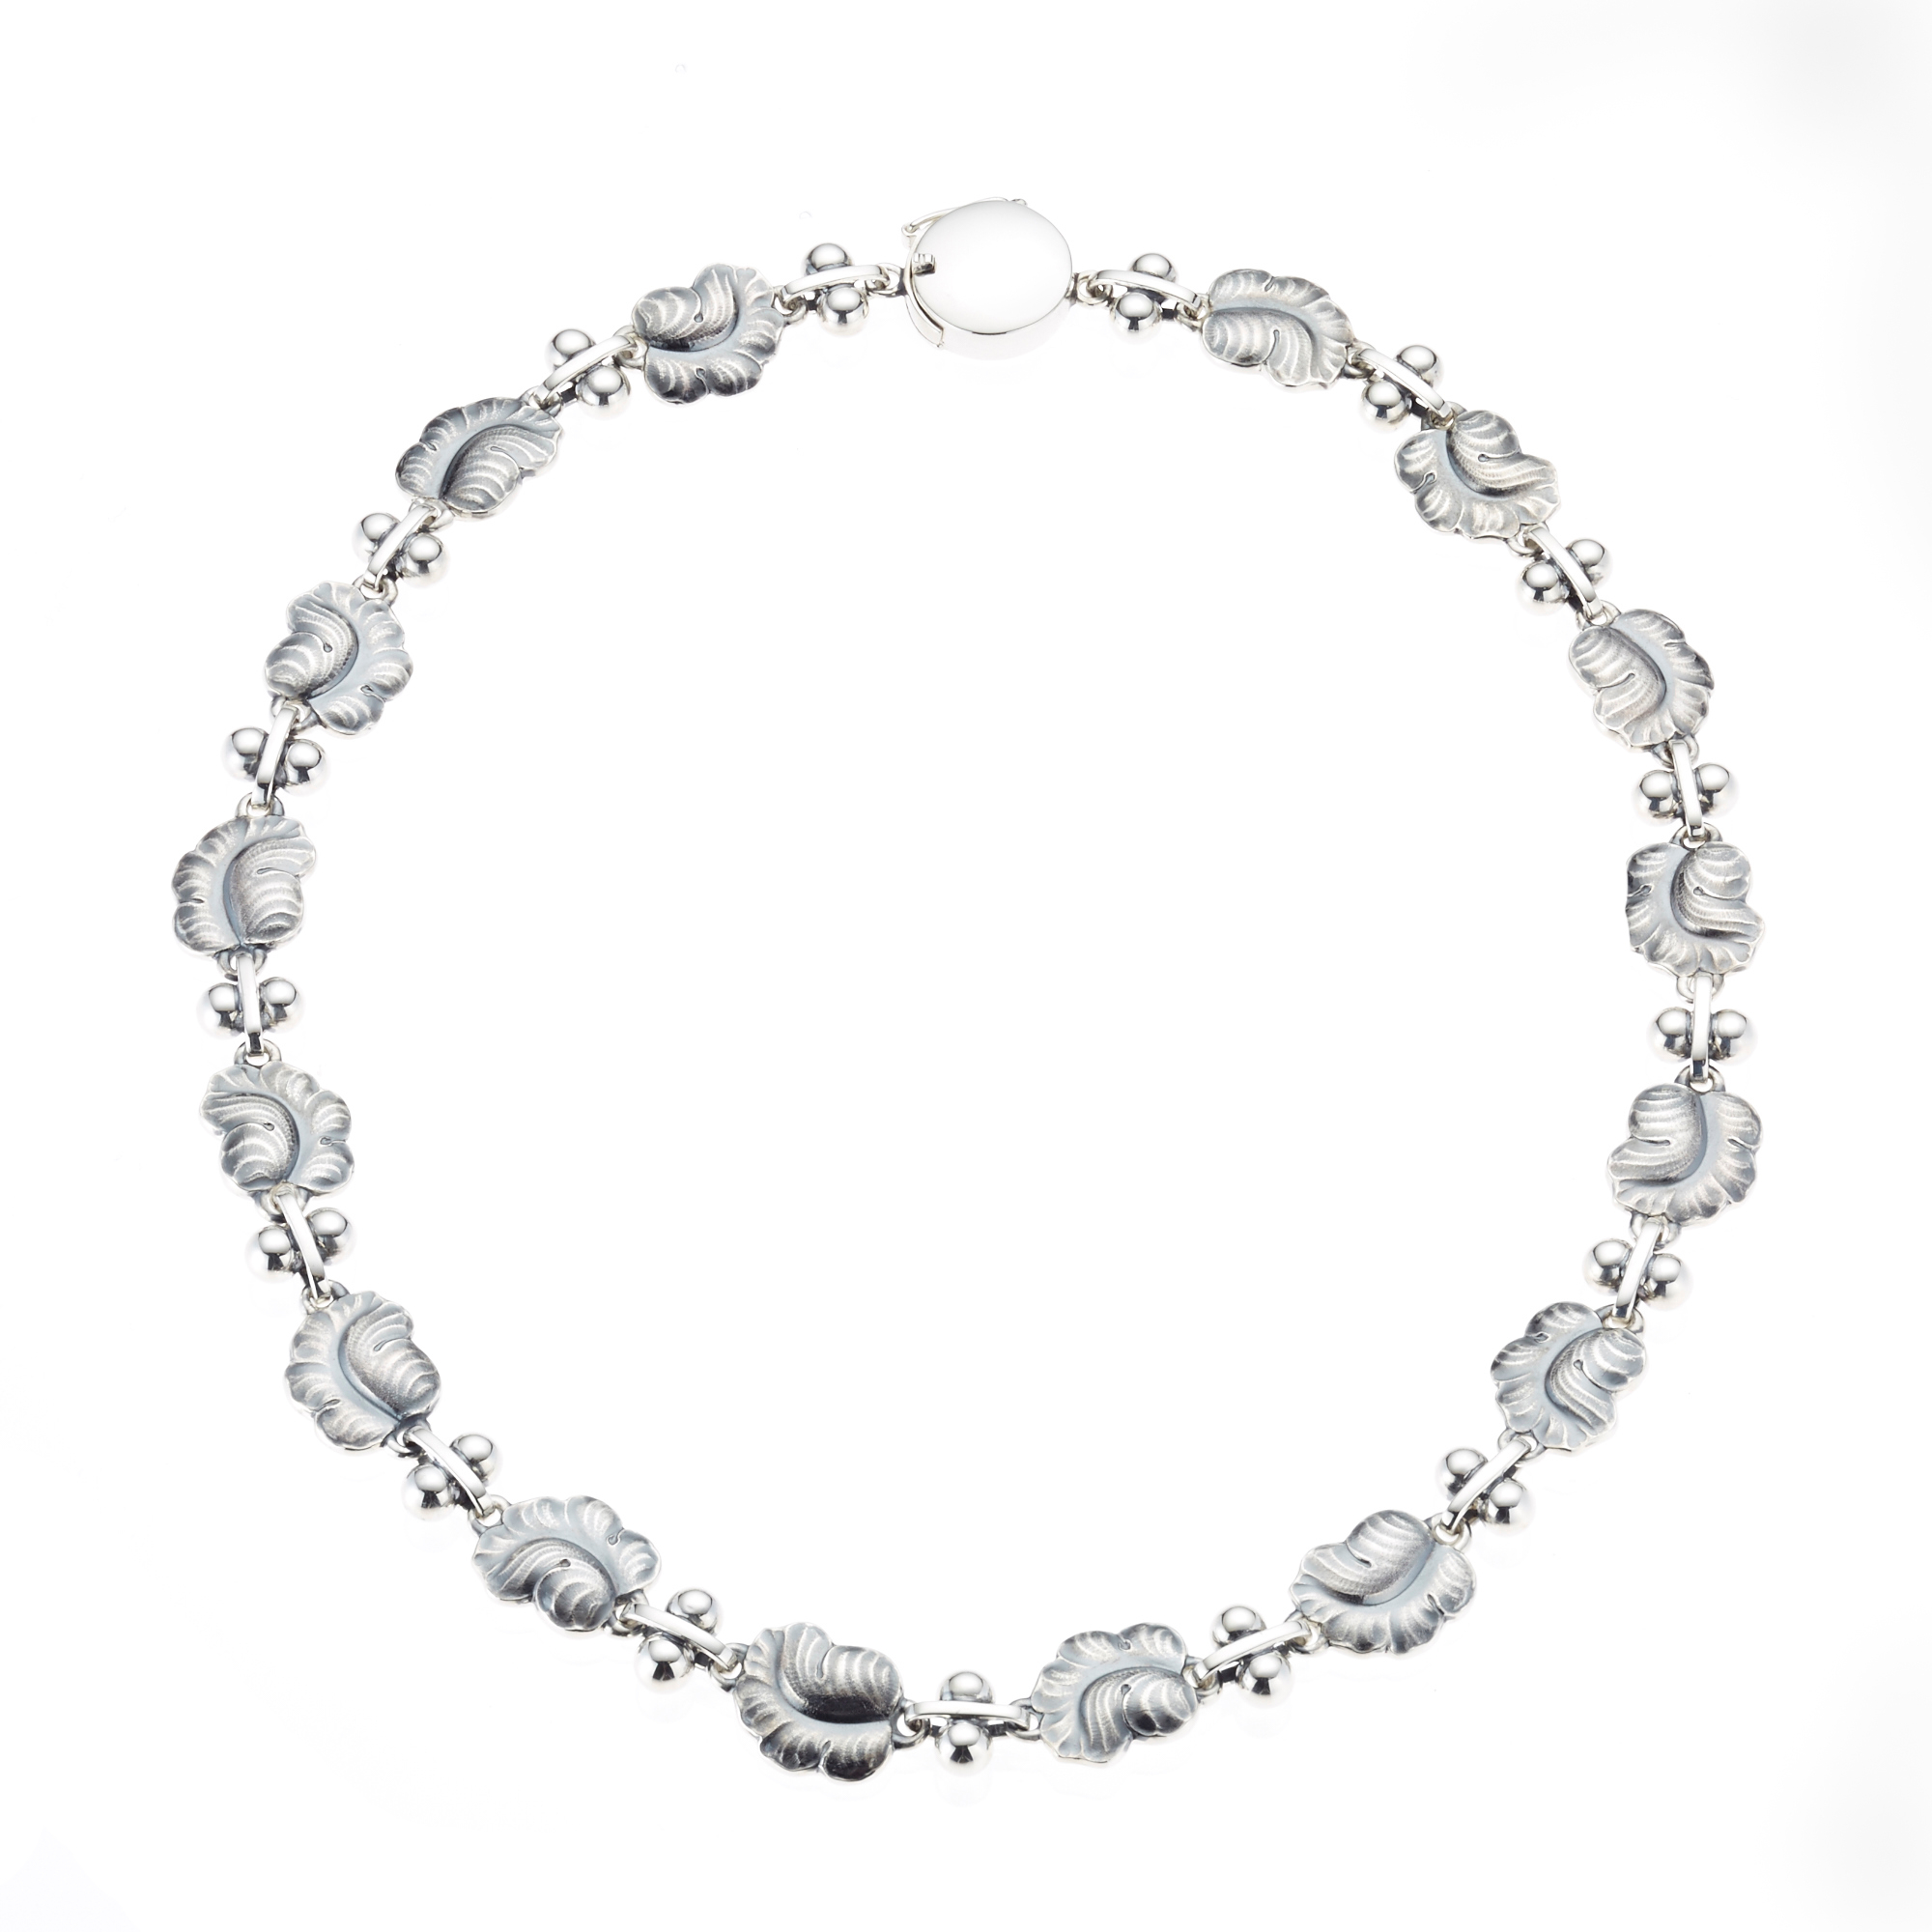 Georg Jensen Moonlight Grapes Sterling Silver Necklace